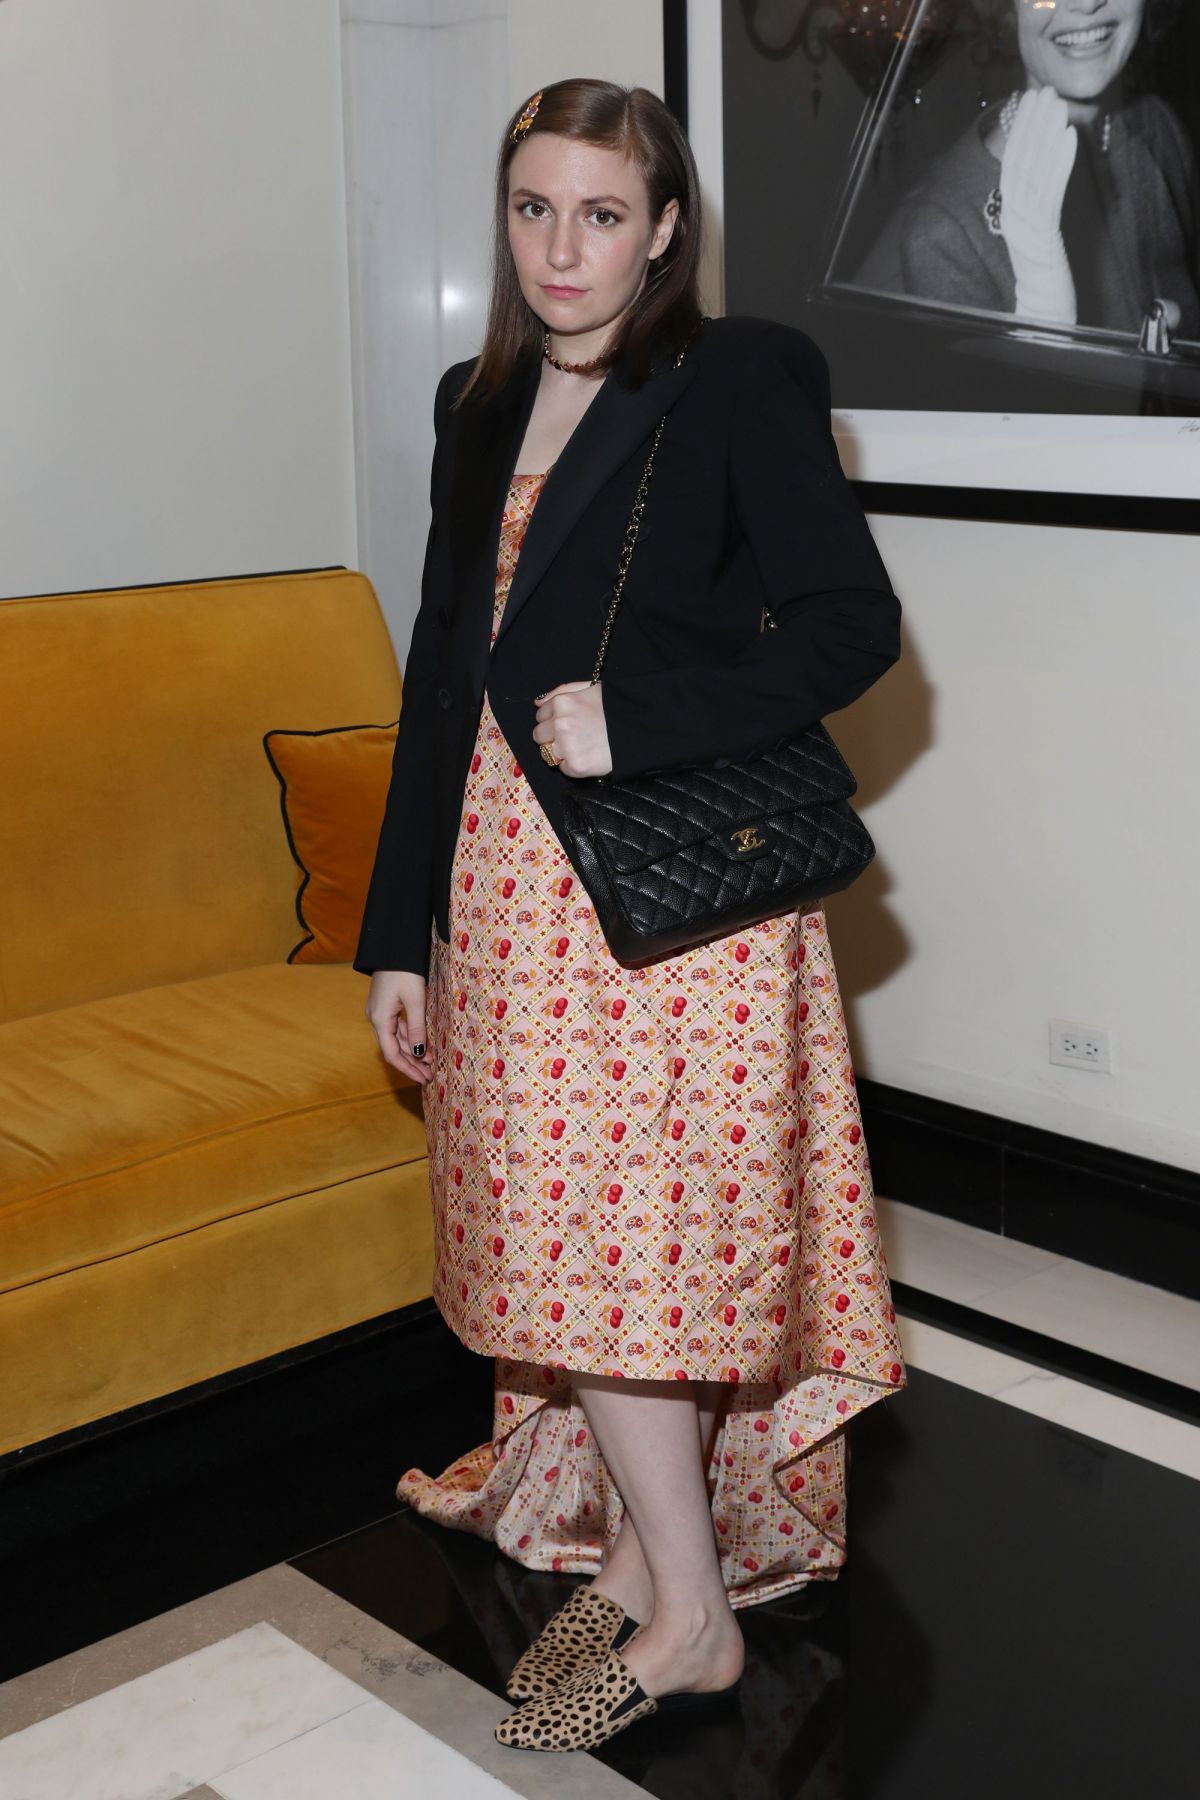 LENA DUNHAM at Instyle March Issue Party in New York 02/07/2017